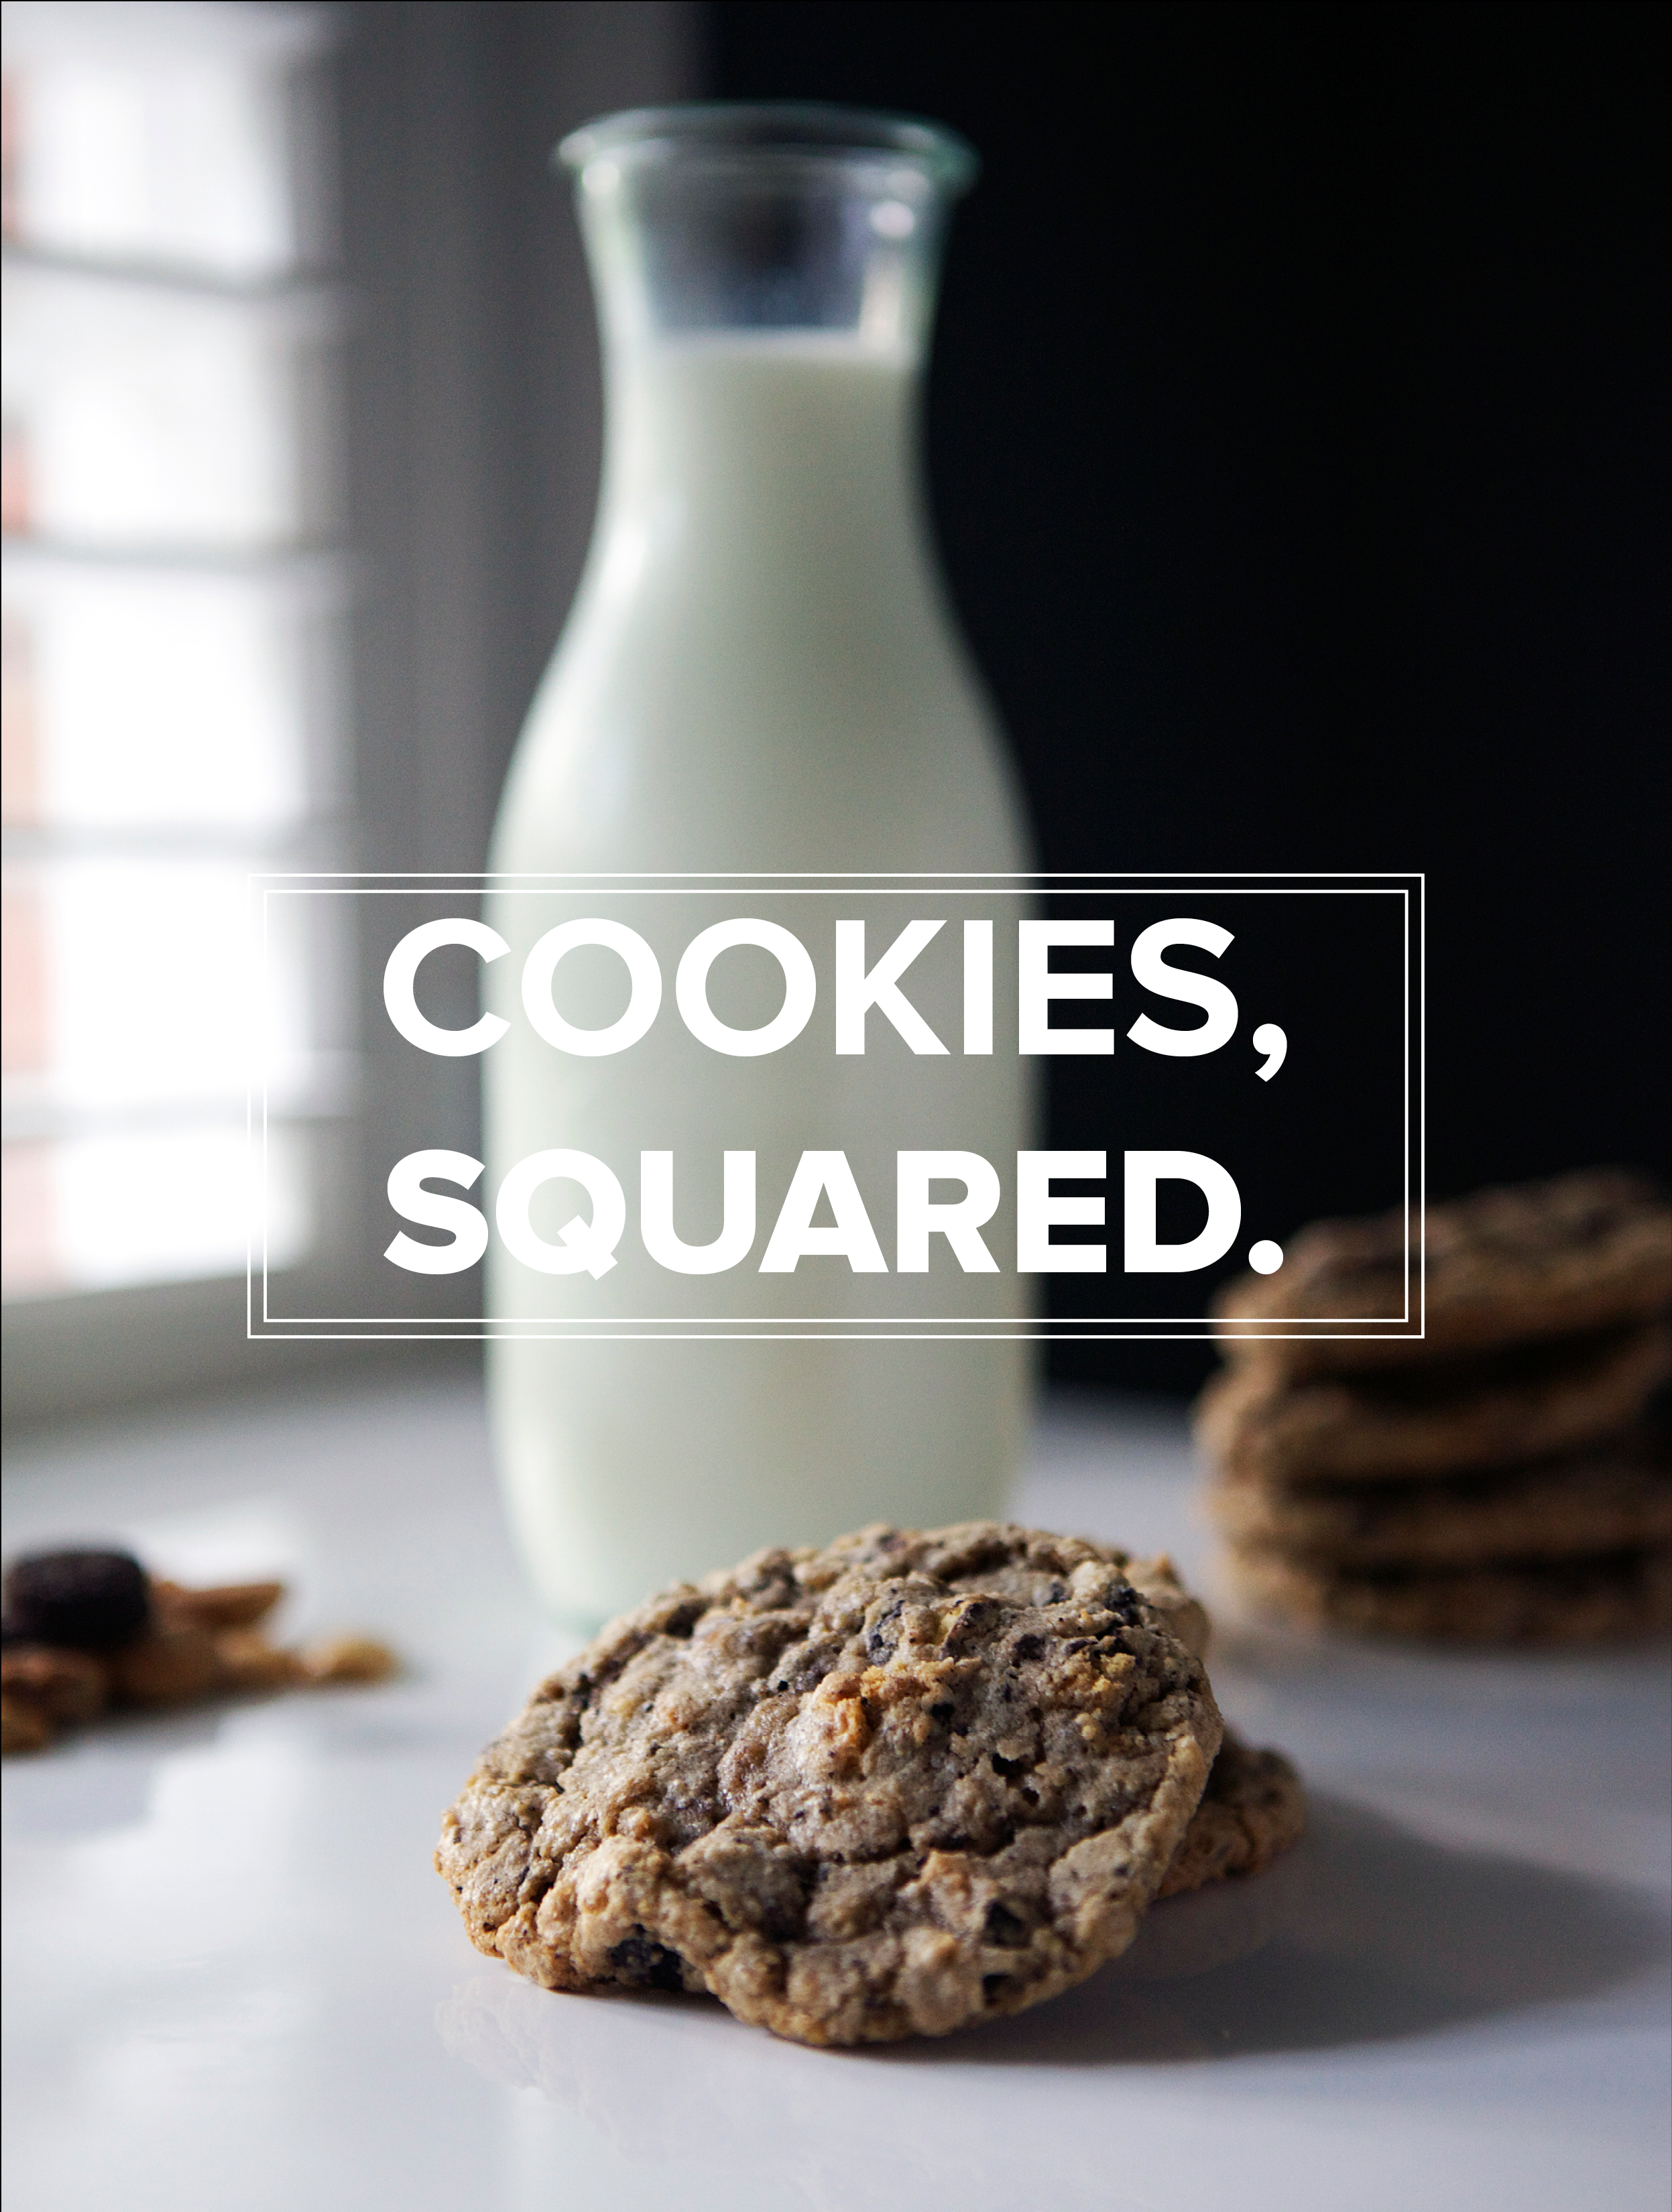 Cookies, Squared by Glazed & Confused